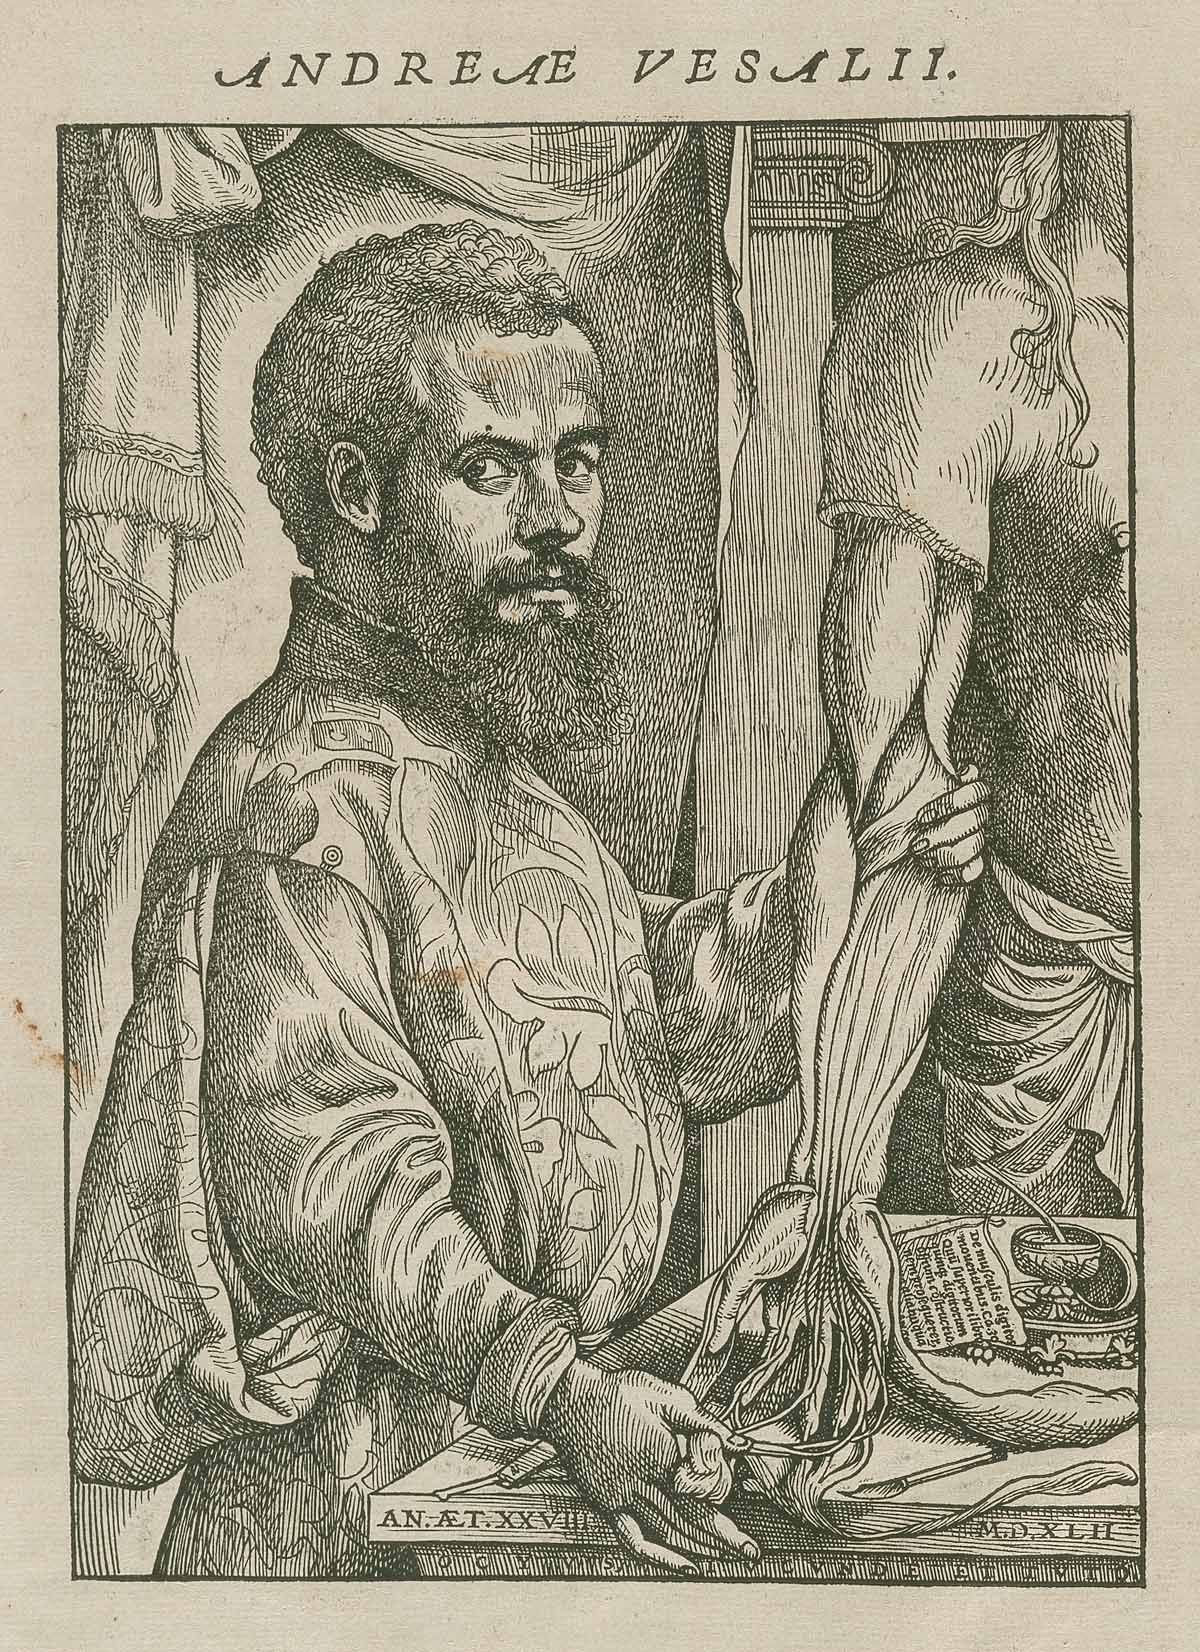 Andreas Vesalius The 16th Century Physician From Brussels Is